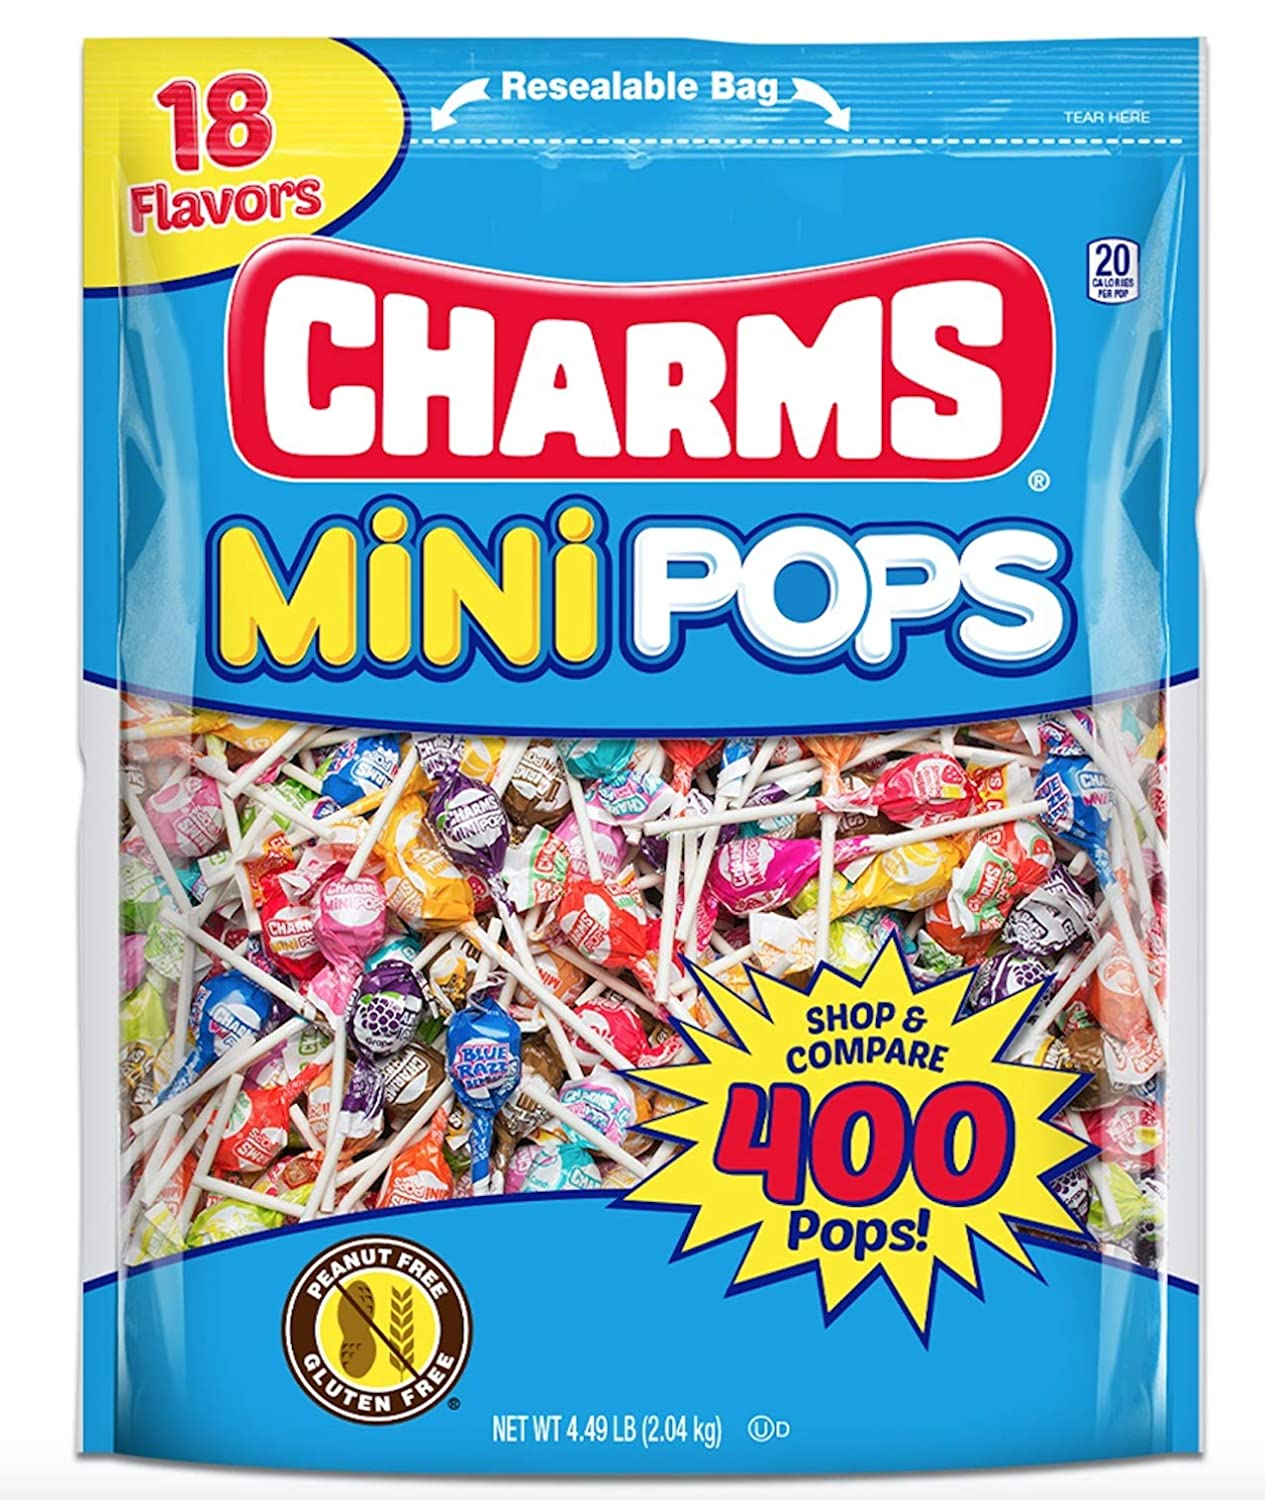 Tootsie Roll Charms Mini Pops 18 Assorted Lollipop Flavors with Resealable Bag (400 Count) Peanut Free, Gluten Free